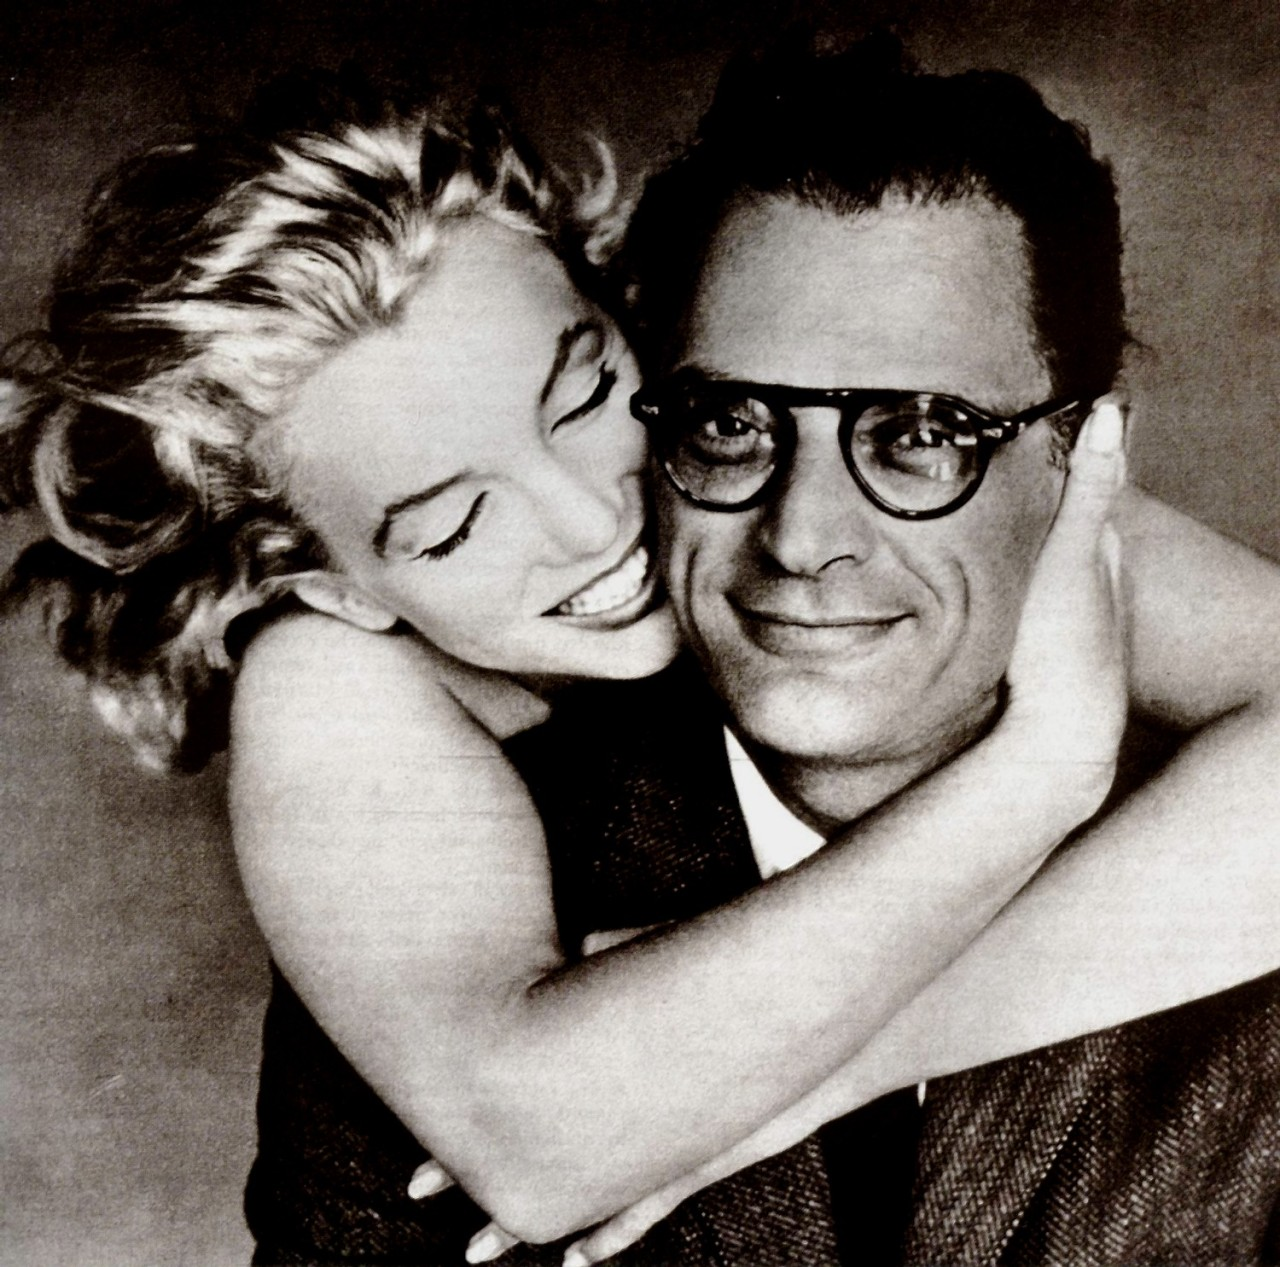 Marilyn Monroe and Arthur Miller photographed by Richard Avedon in 1957